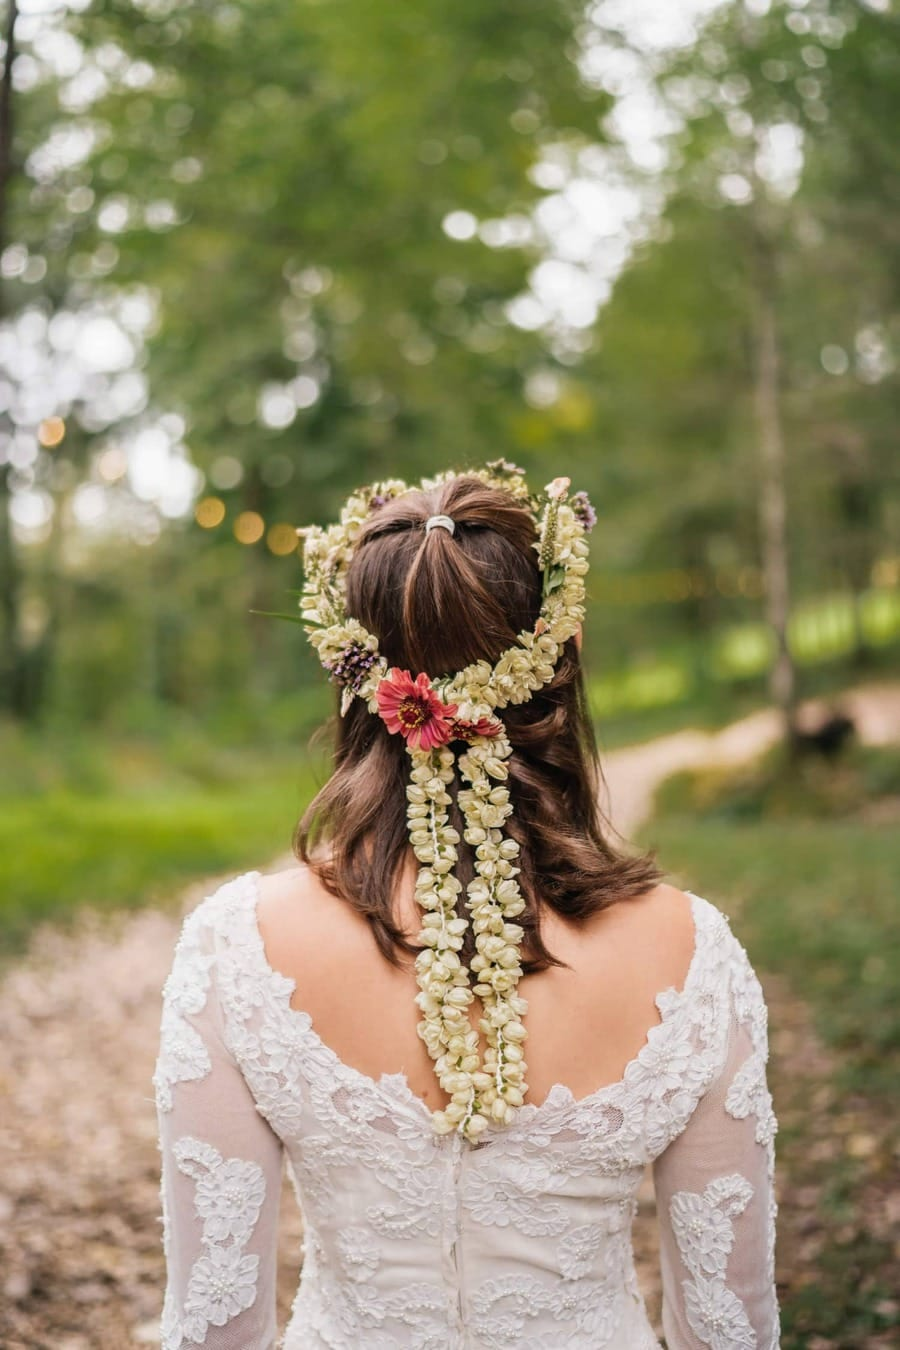 Bride's hair is decorated with flower wreaths and is wearing lace dress for wedding in Catskills.